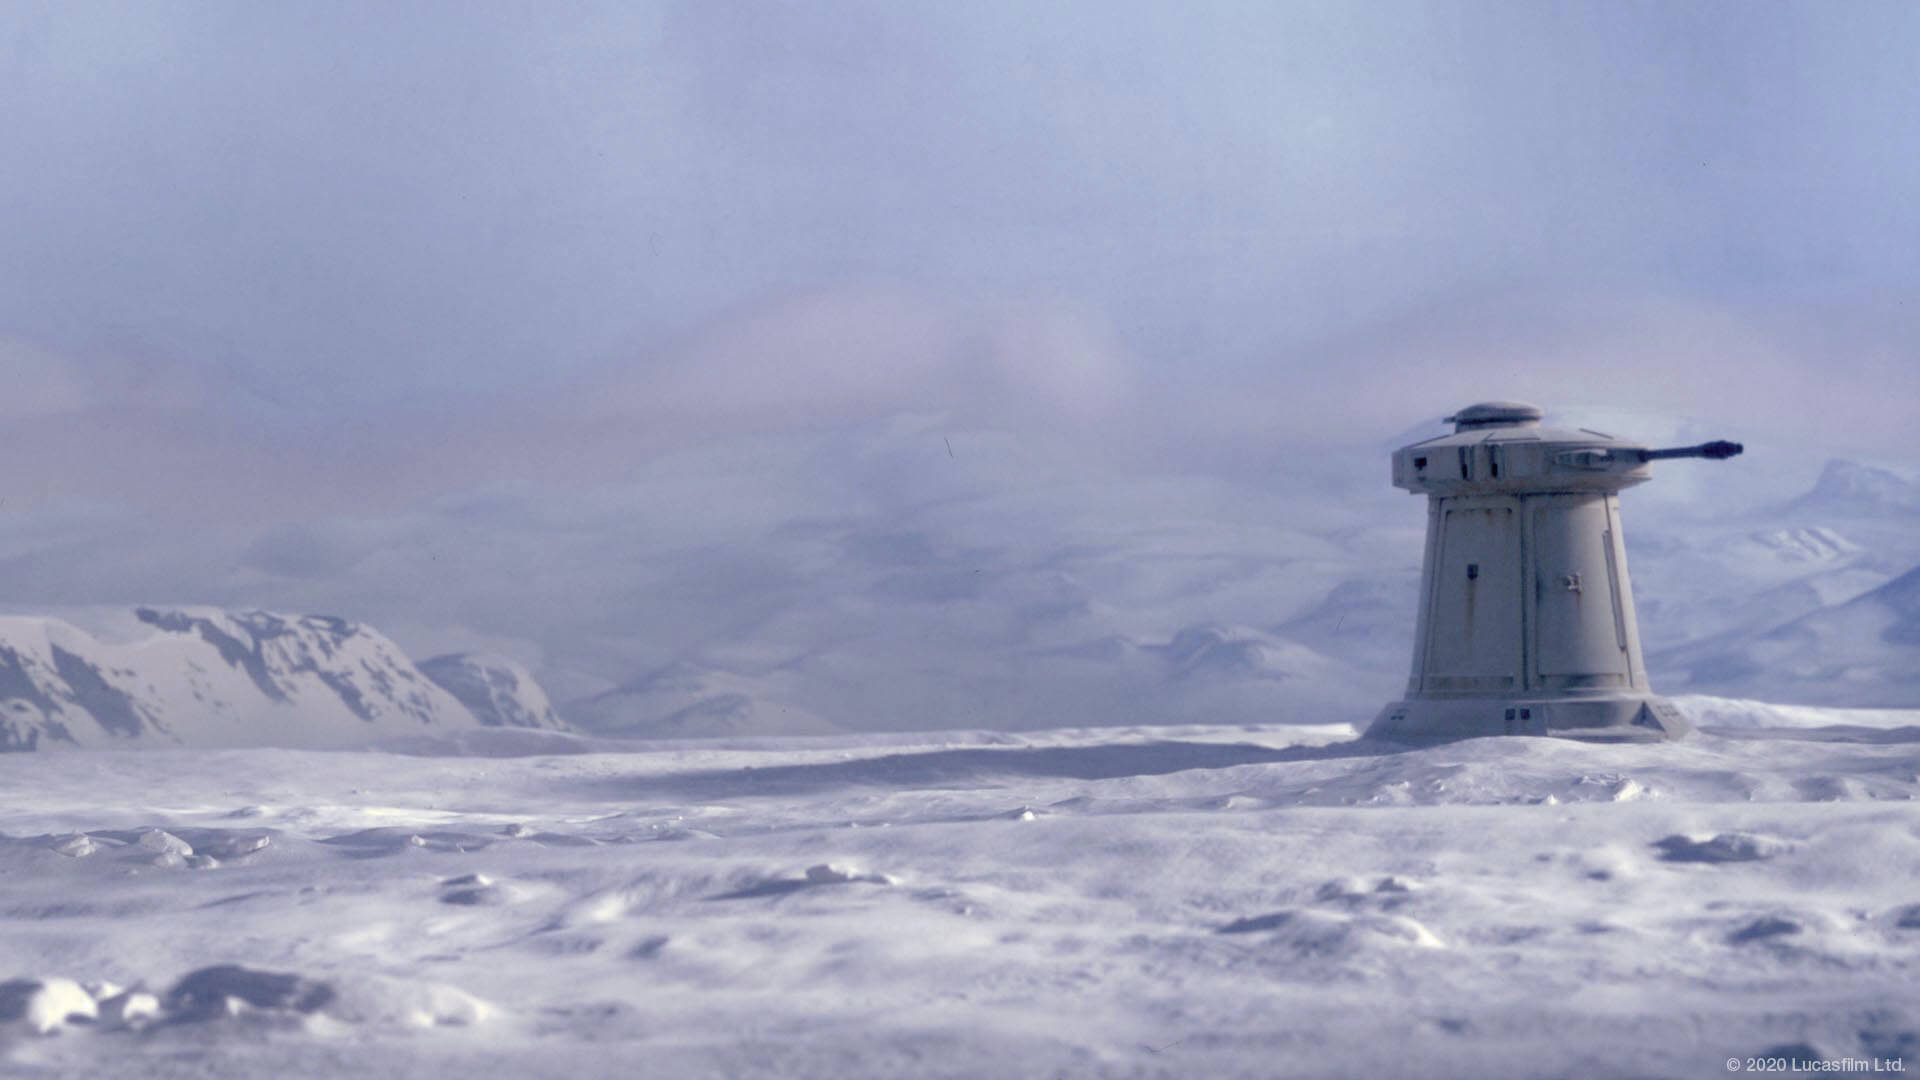 Star Wars Hoth Wallpapers Top Free Star Wars Hoth Backgrounds Wallpaperaccess